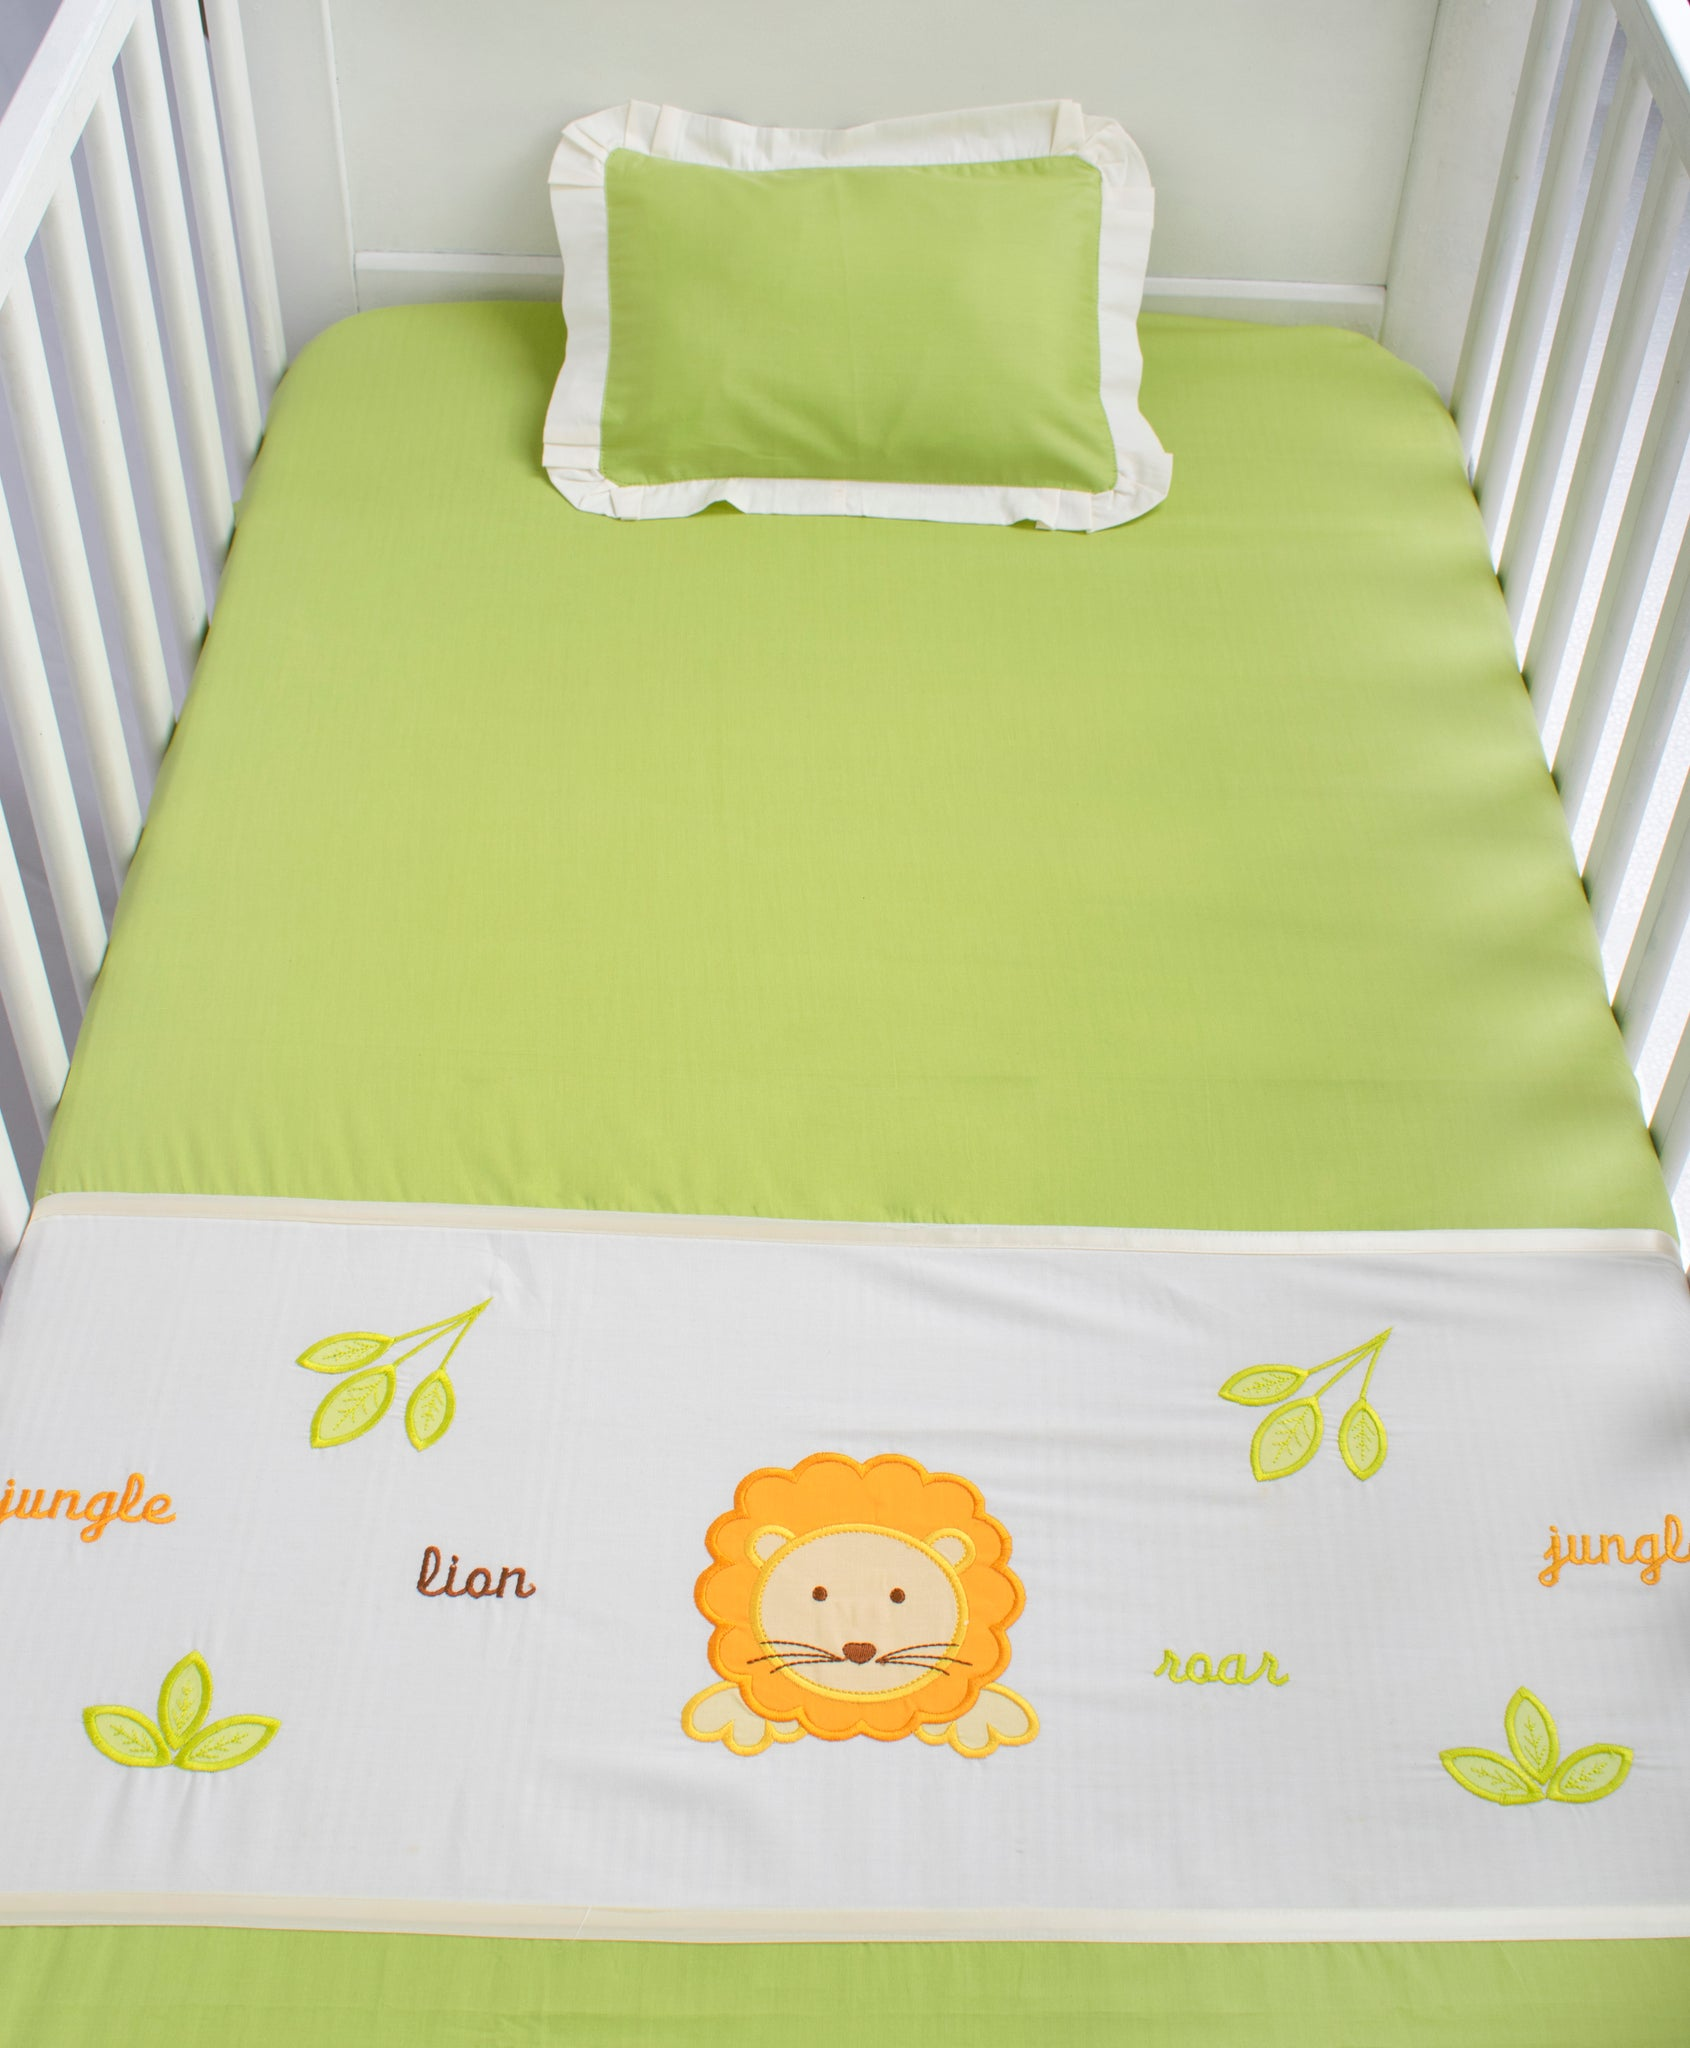 Blooming Buds Cot Sheet with Pillow Cover - Jungle Friends (Green)